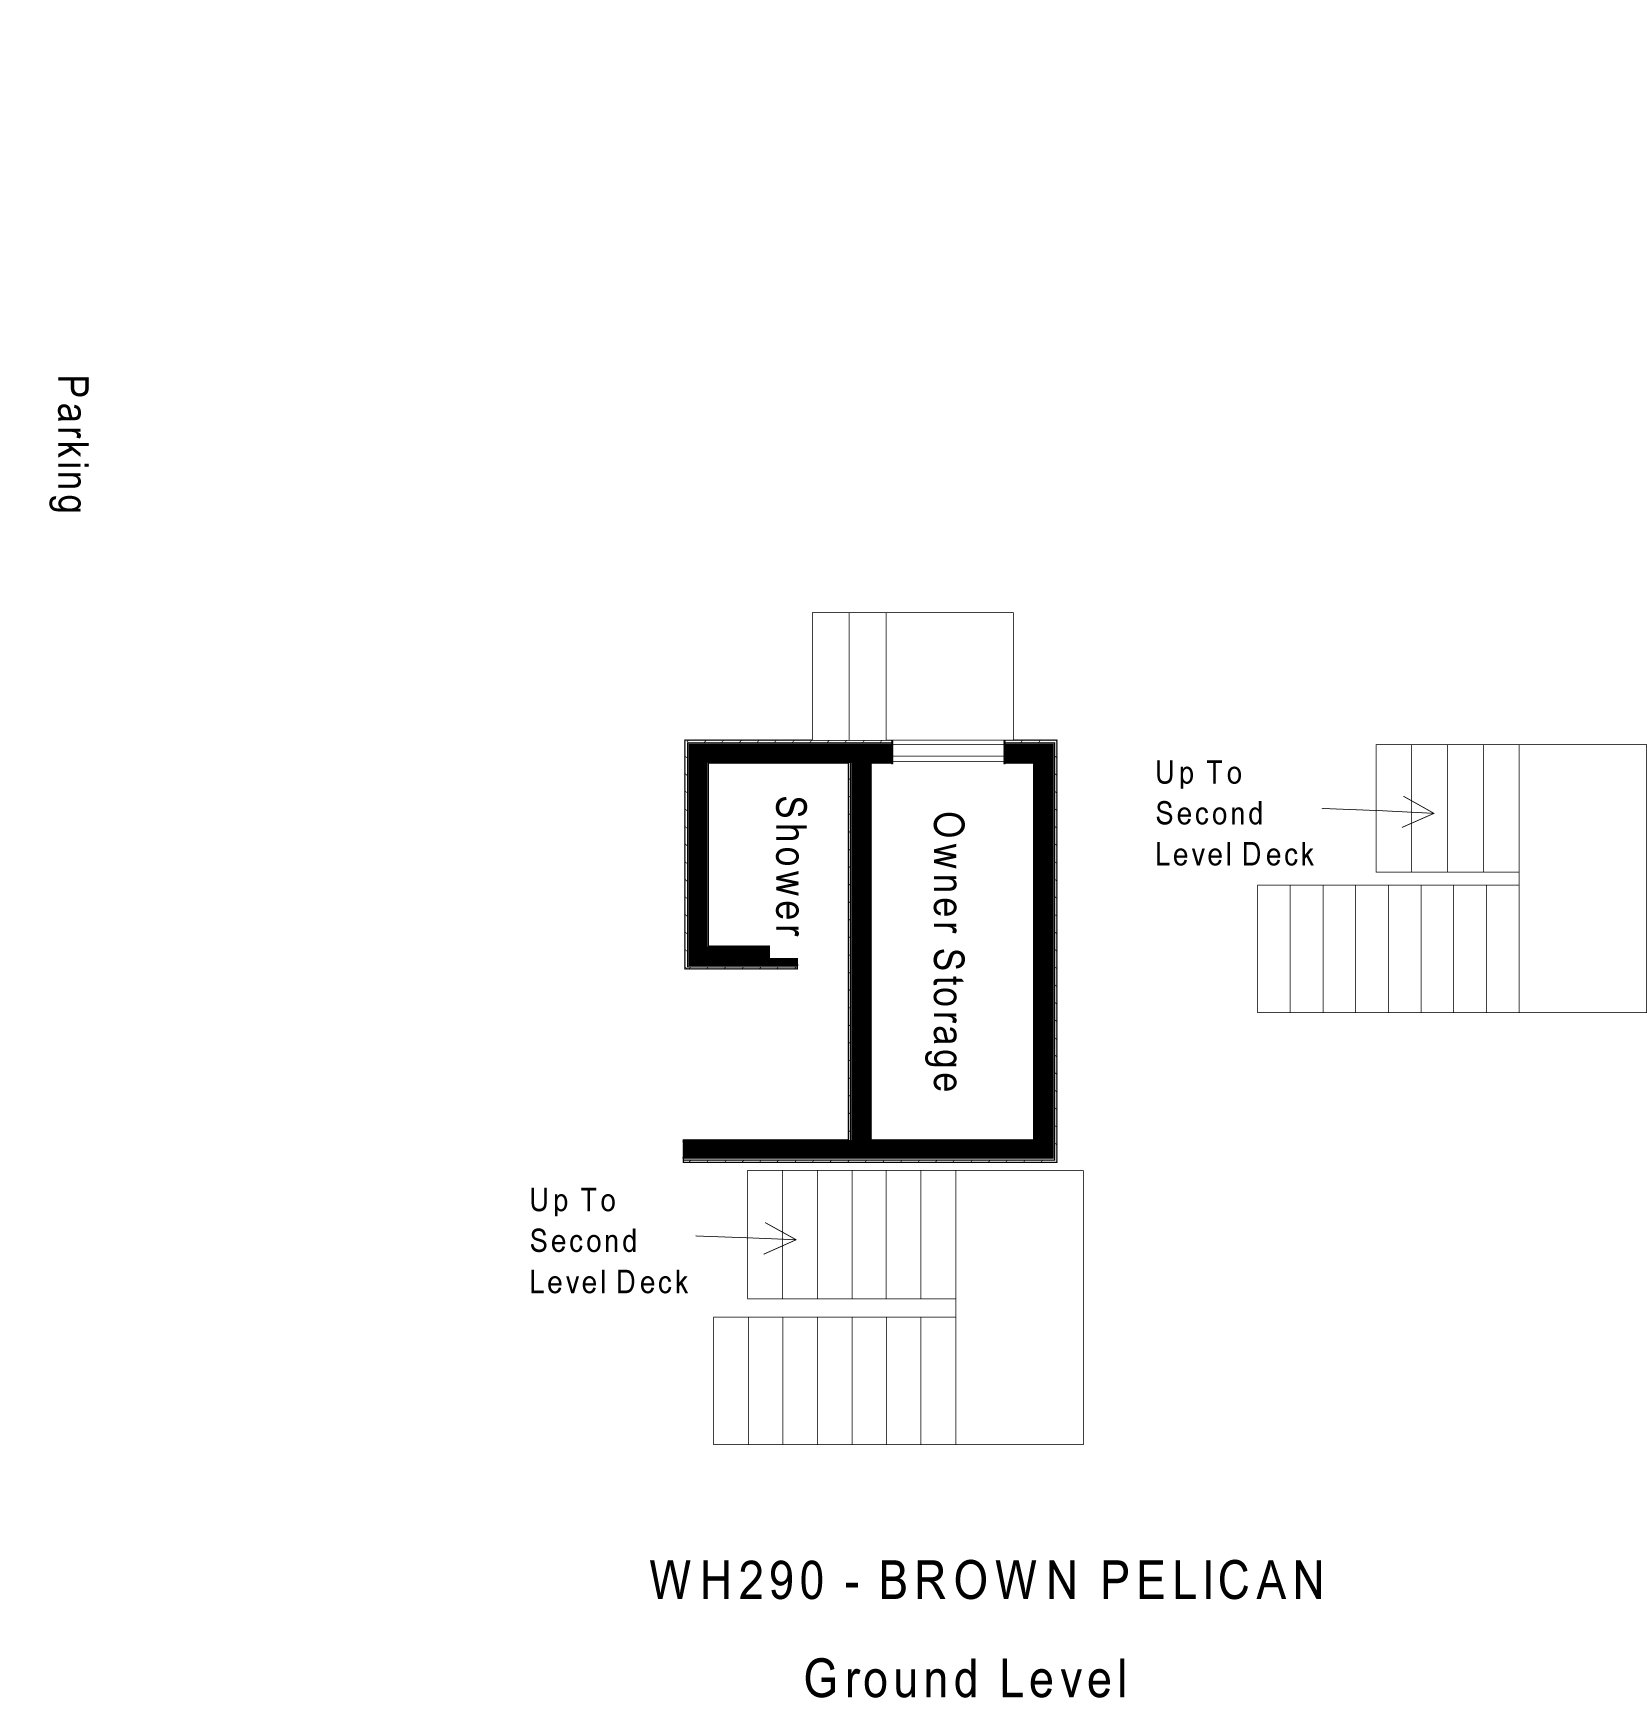 WH029 Brown Pelican - Floorplan Level 1